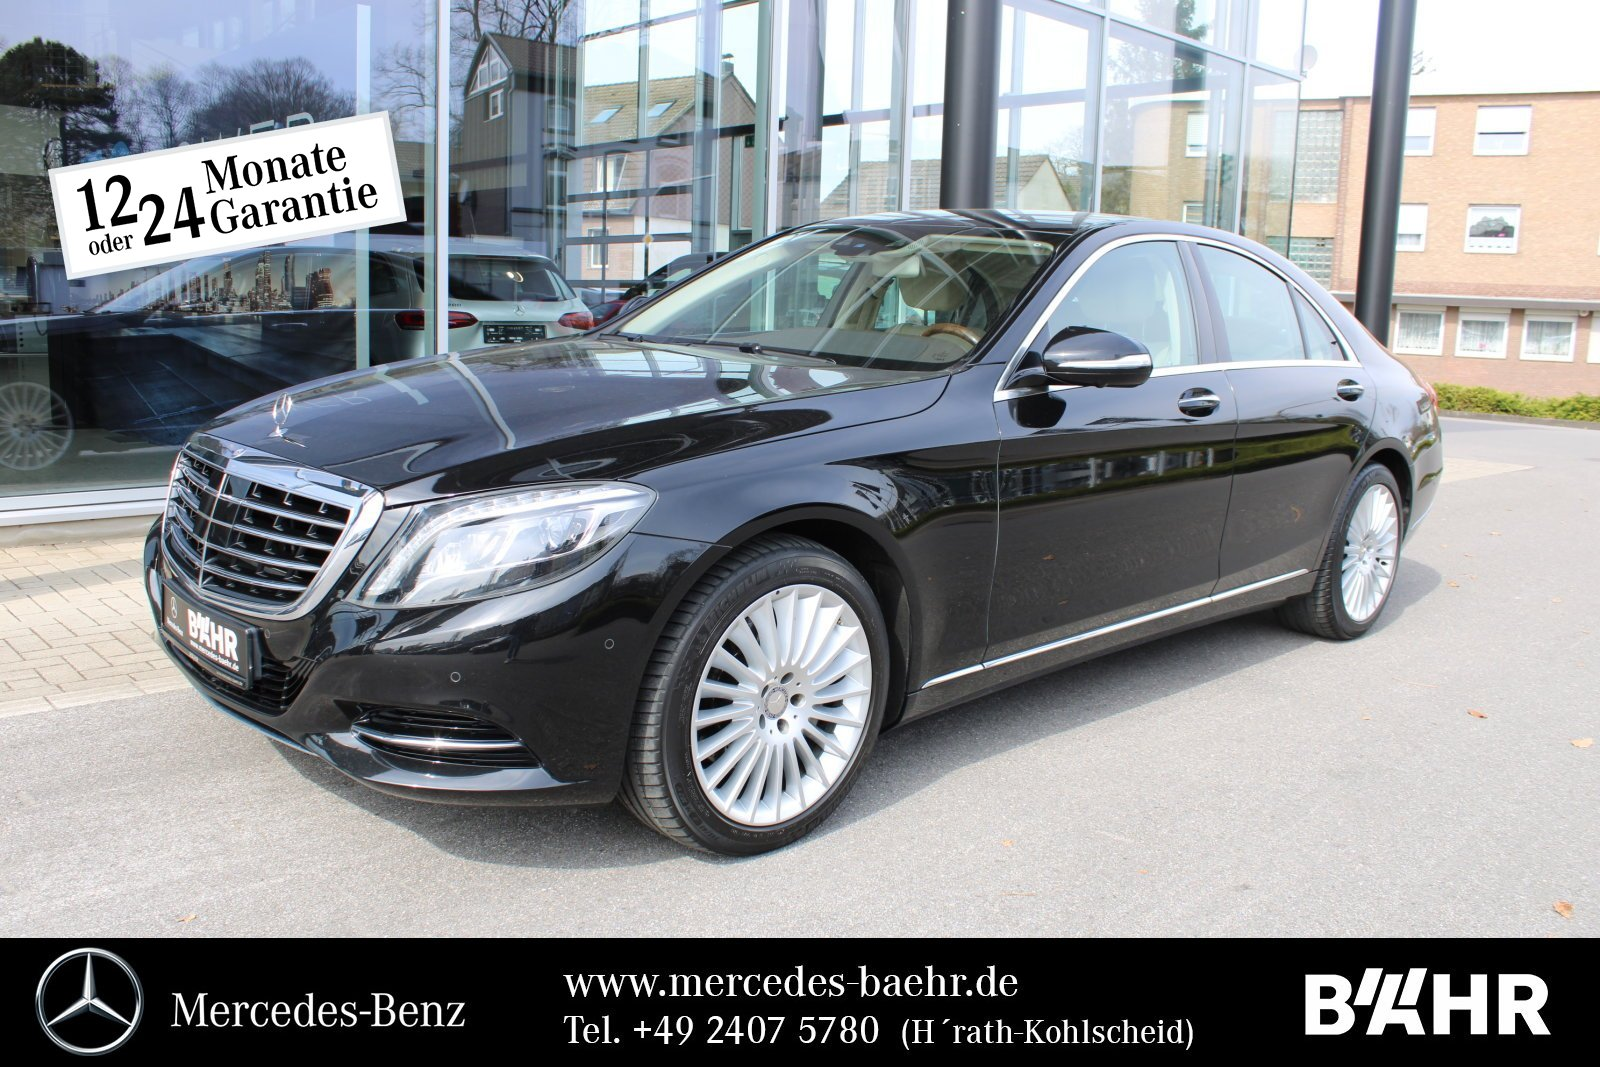 Mercedes-Benz S 350 BT Comand/LED-ILS/Distronic/Totwinkel/360°, Jahr 2014, Diesel